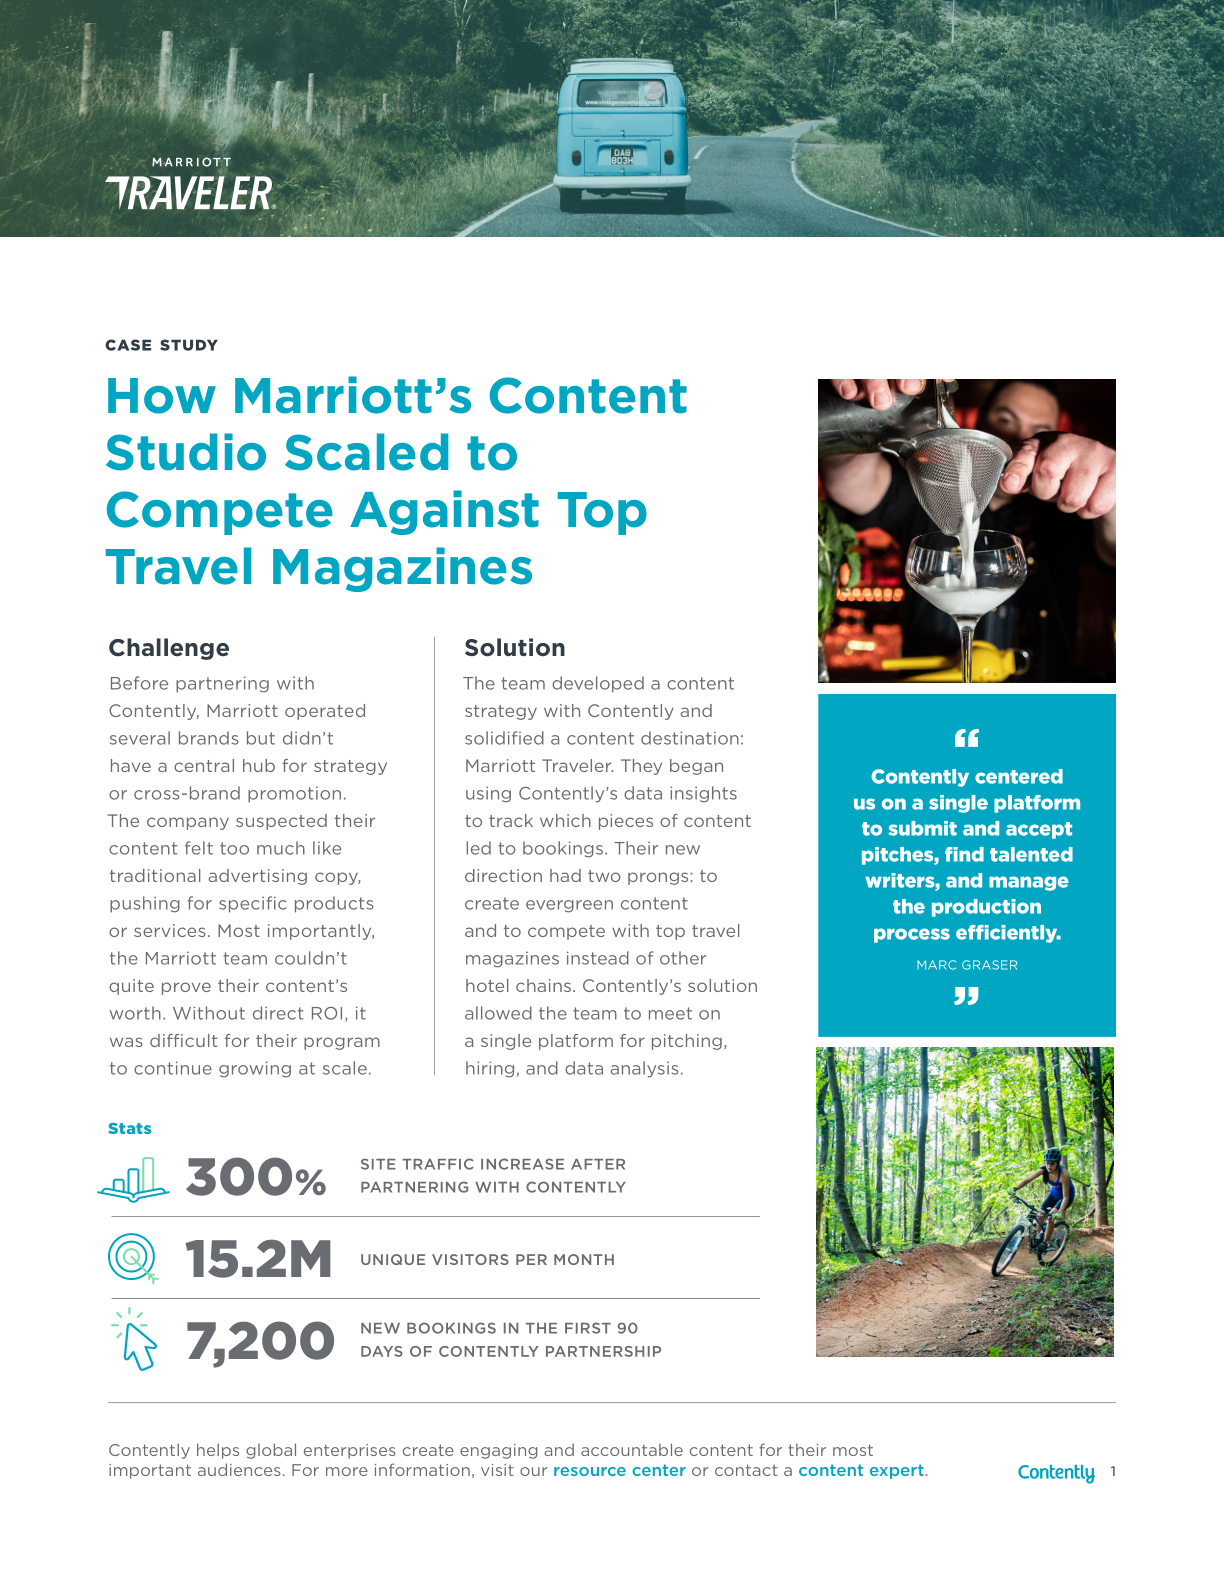 How Marriott's Content Studio Scaled to Compete Against Top Travel